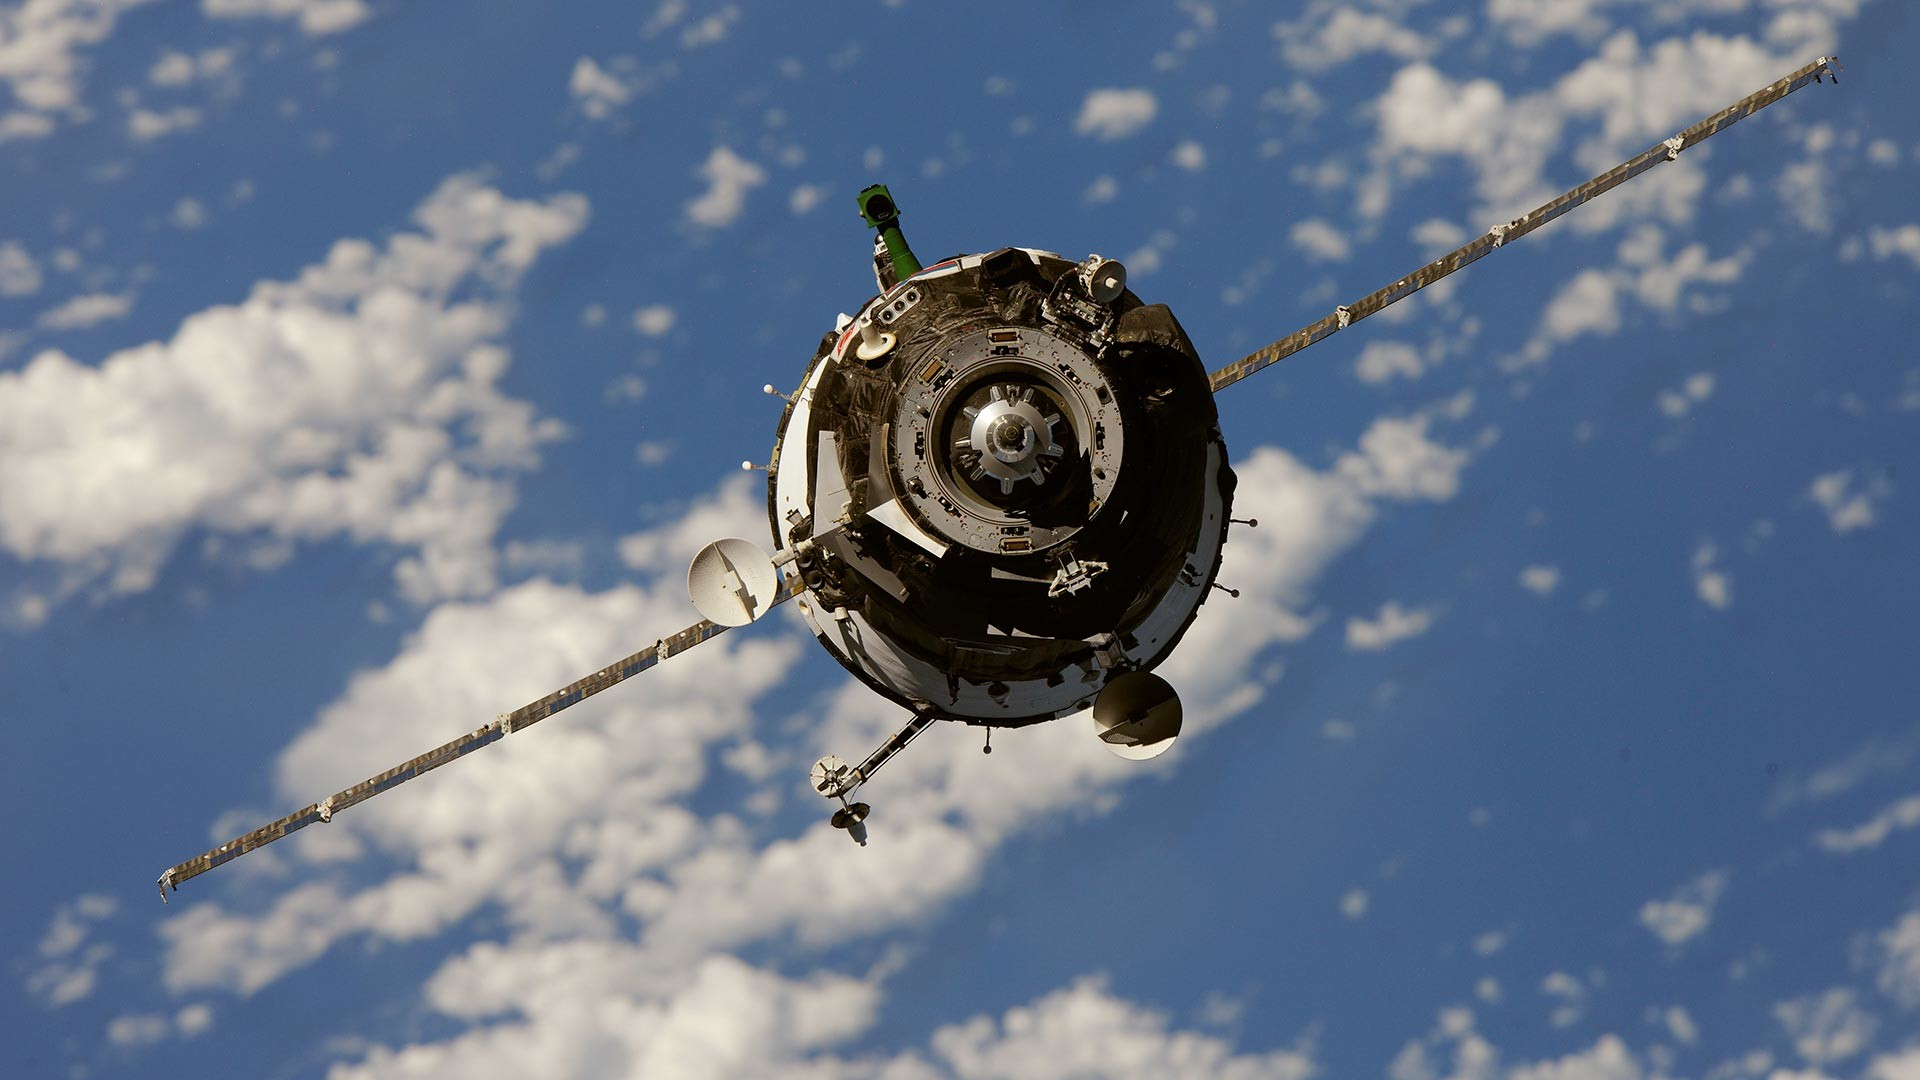 The Soyuz TMA-01M